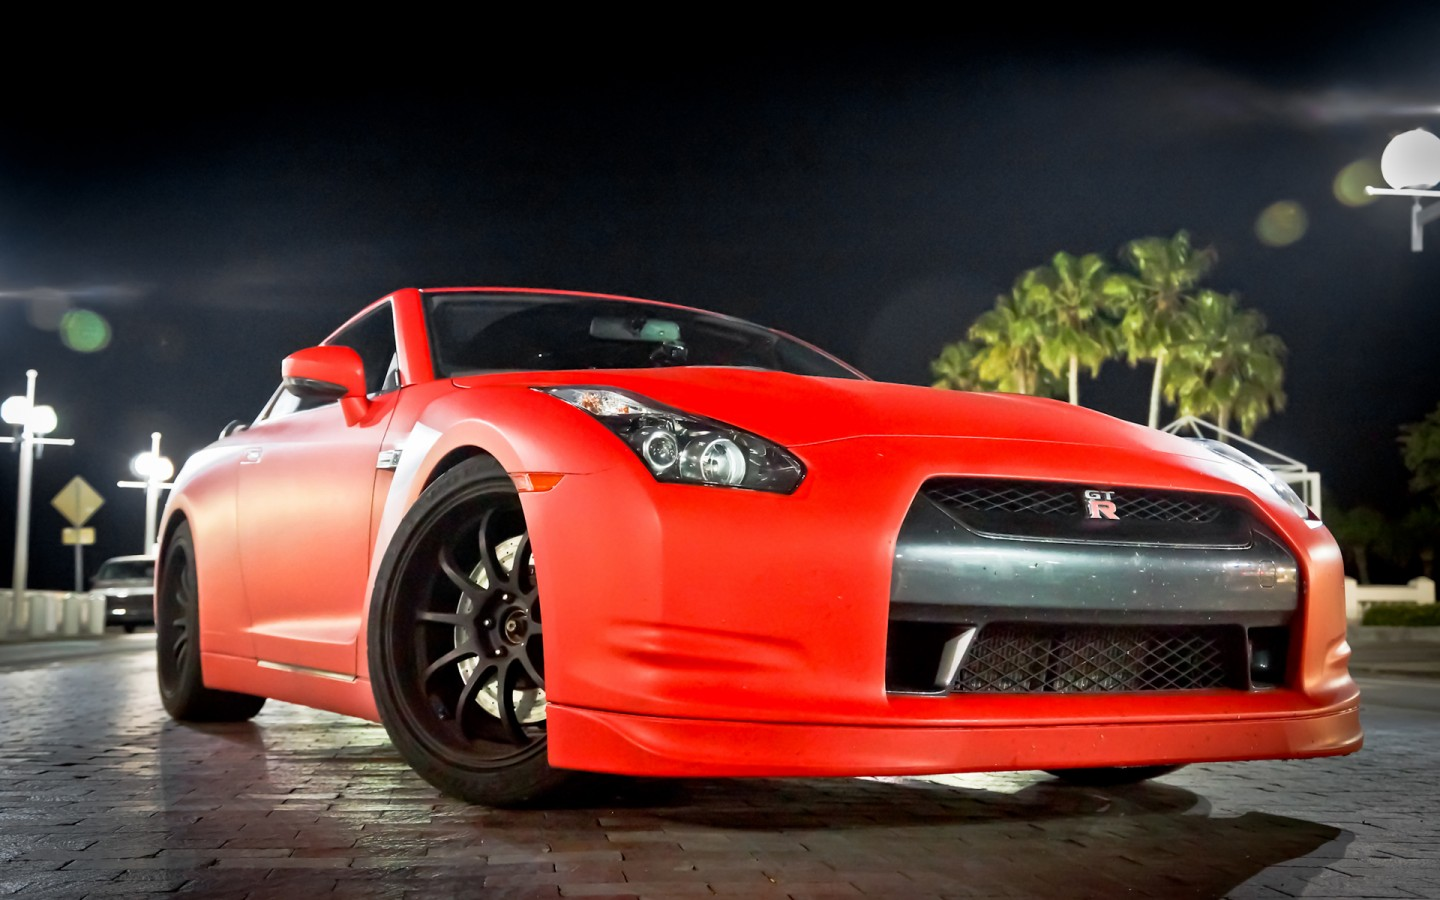 Fast Car Wallpaper For Bedroom Nissan Gtr Matte Red Wallpaper Hd Car Wallpapers Id 2976